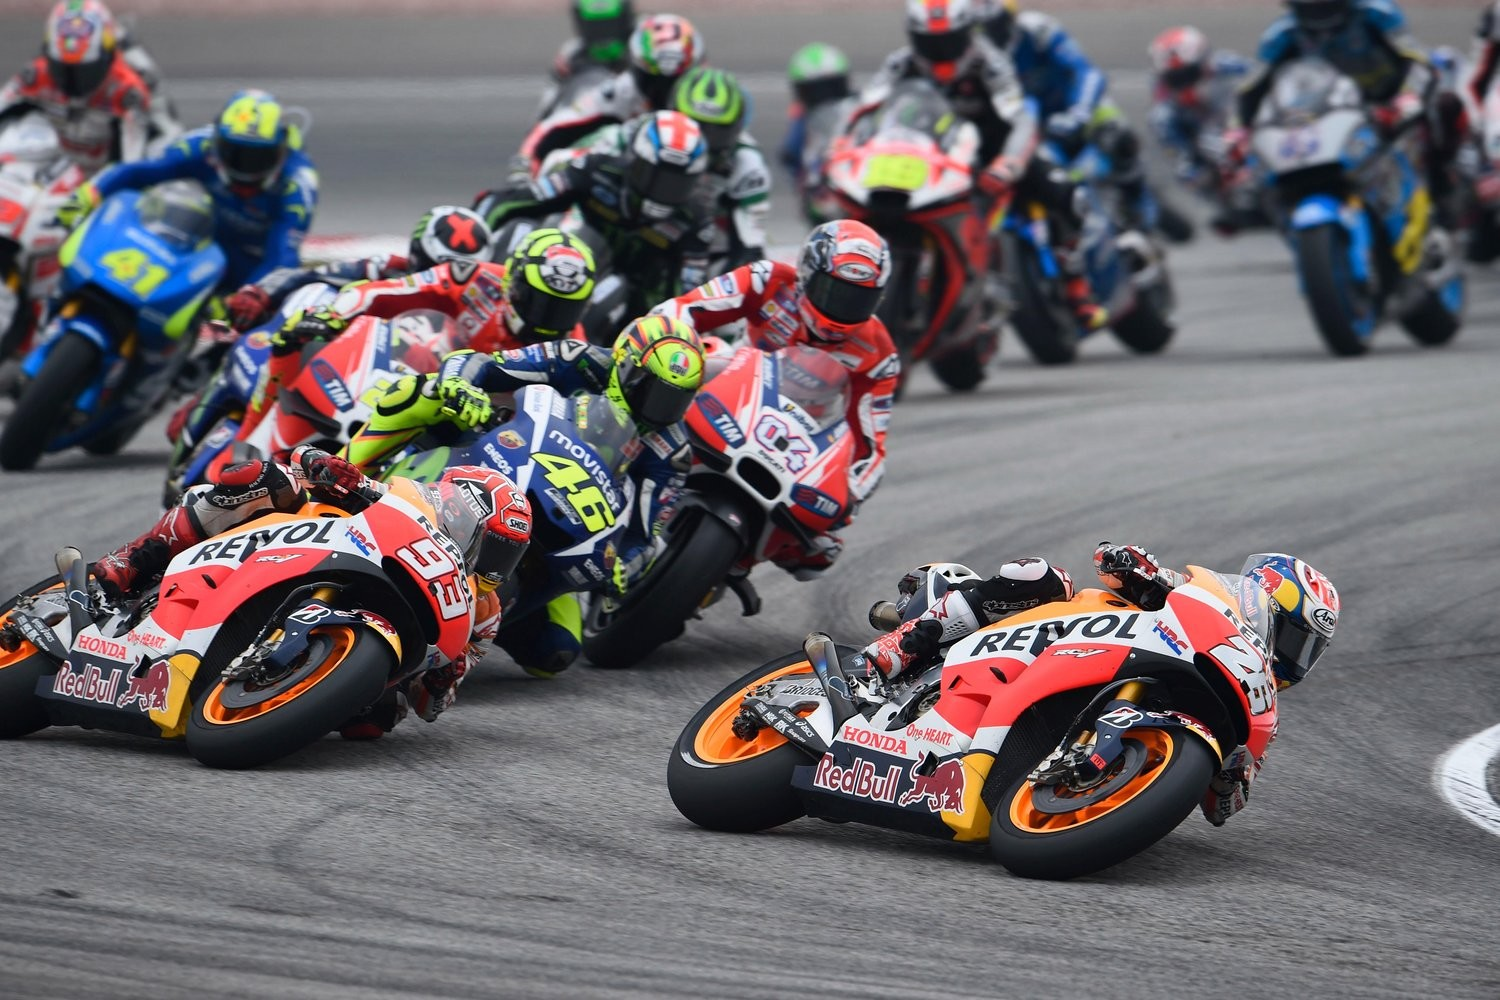 MotoGP streaming Rojadirecta, link e sit